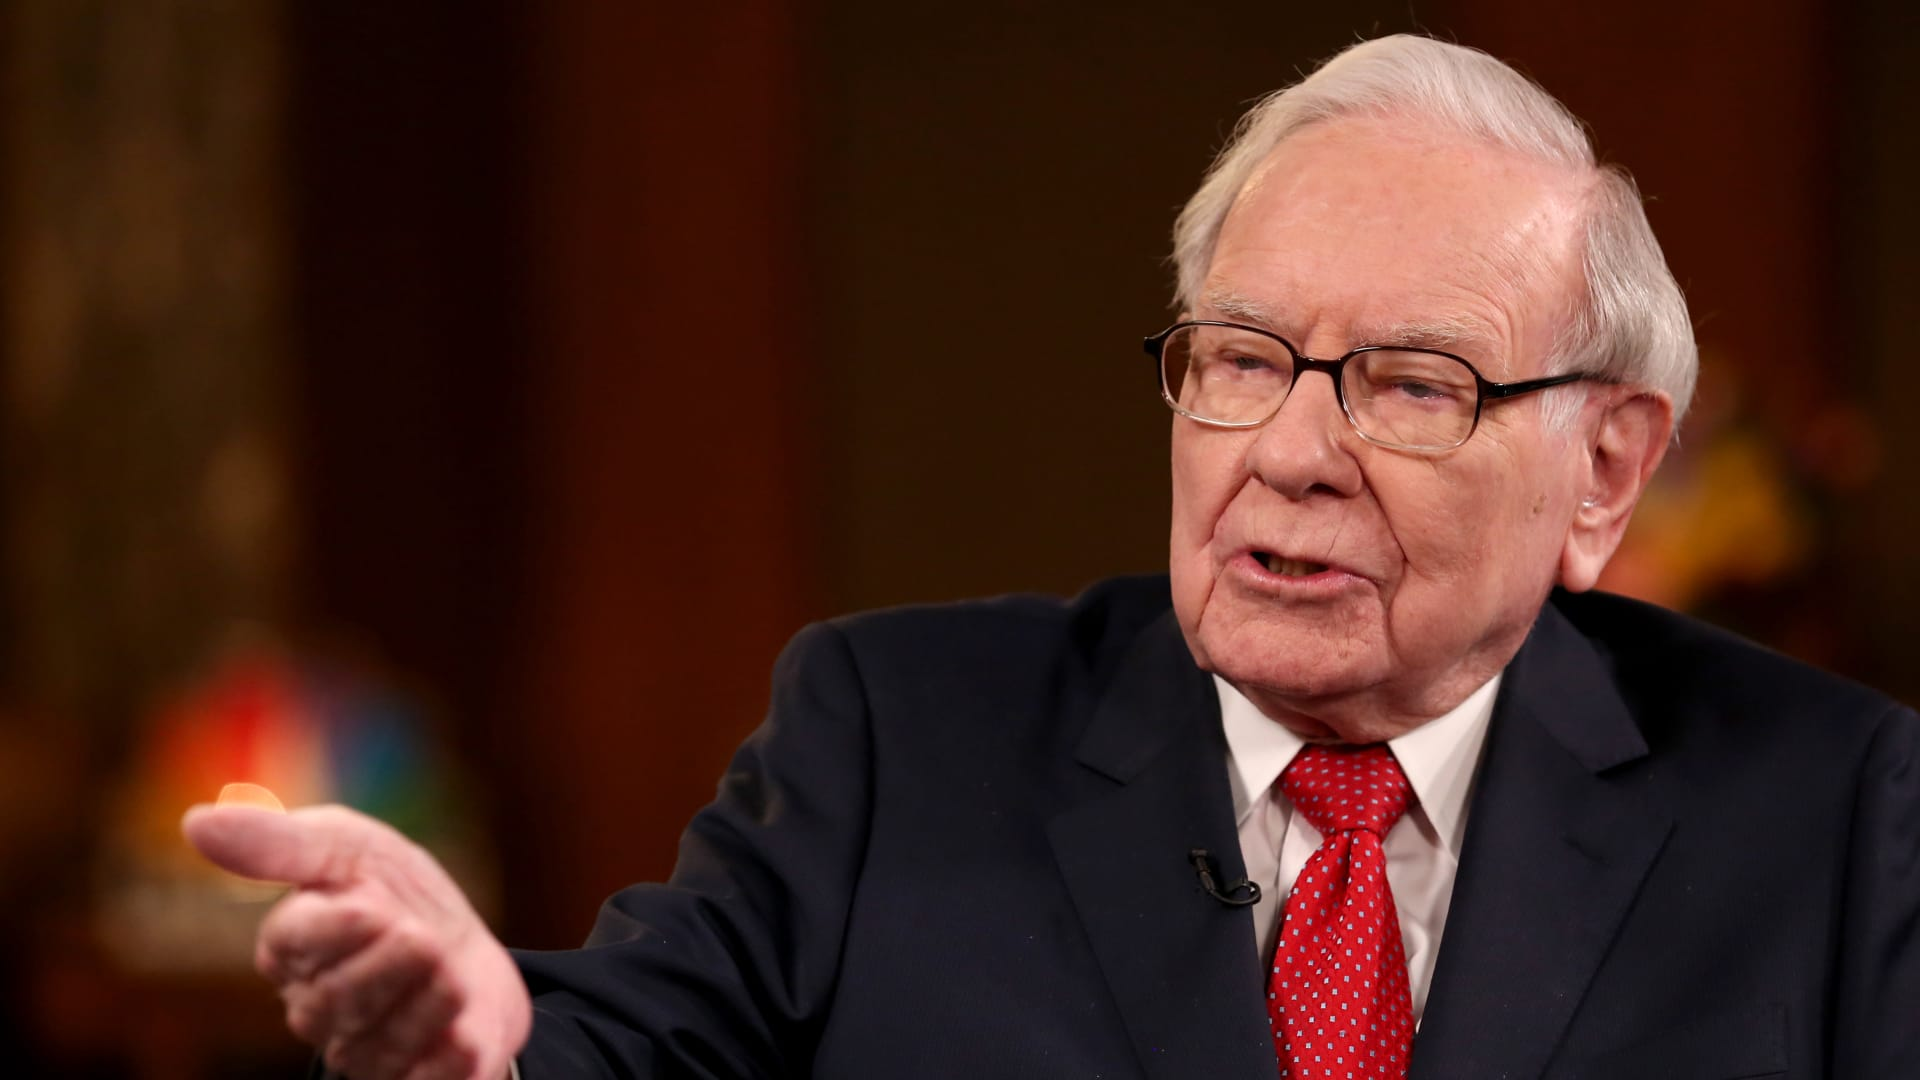 Warren Buffett during an interview with CNBC's Becky Quick on February 24, 2020. It turned out to be another year during which the billionaire investor shied away from game-changing acquisitions.